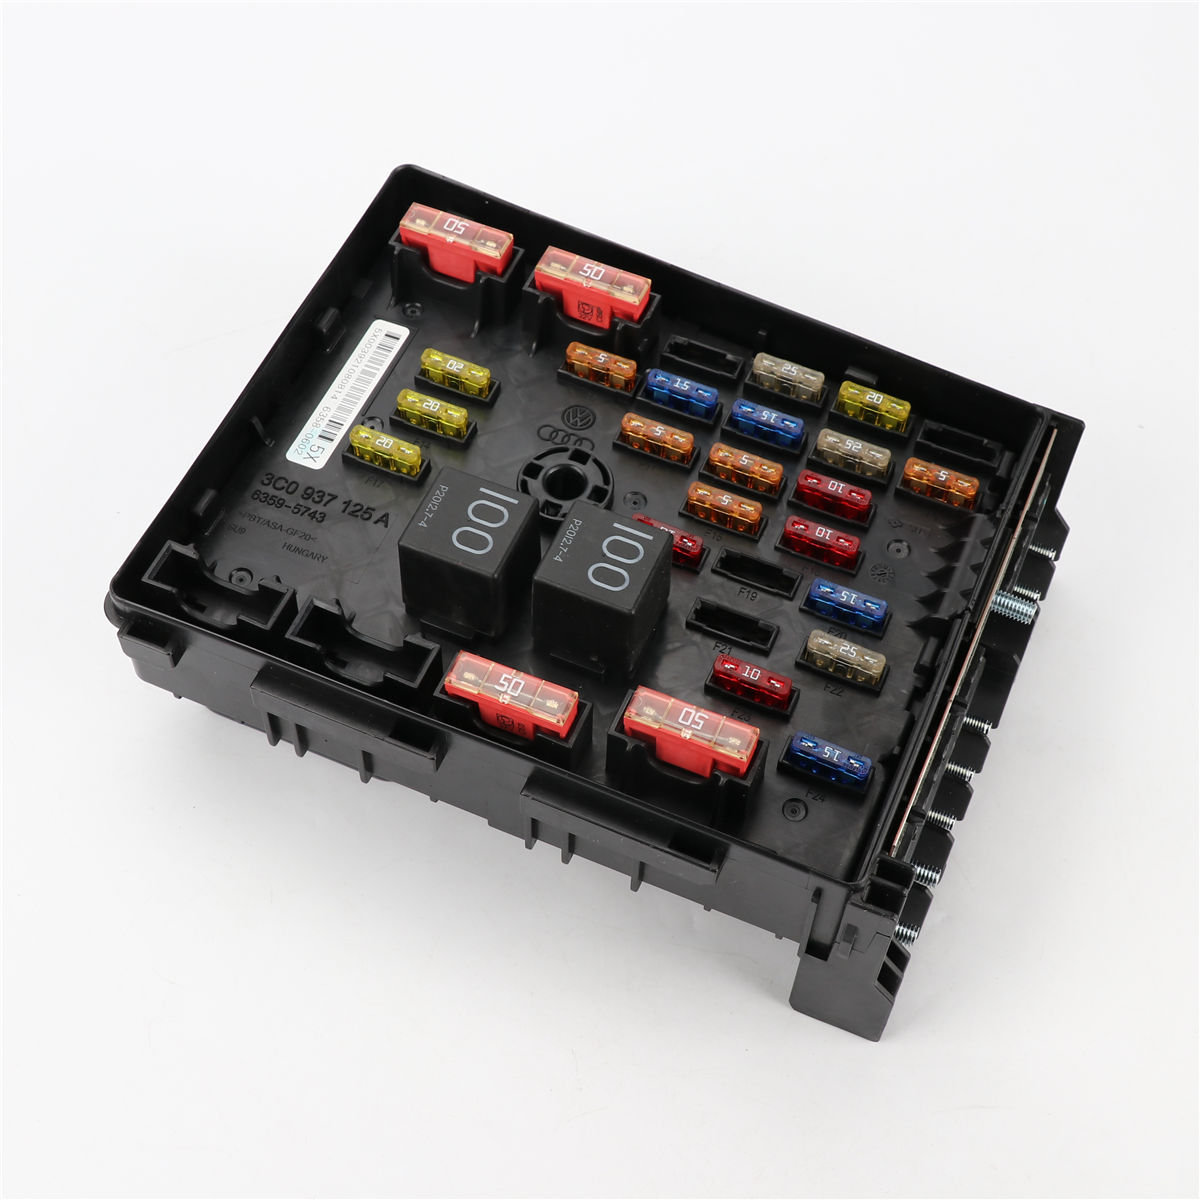 701919506a 701 919 506 A 85154016500 Cooling Fan Control Relay Volkswagen Eurovan Fuse Box New Main For Vw Passat B6 Tiguan Cc Audi Q3 Seat Alhambra Touran